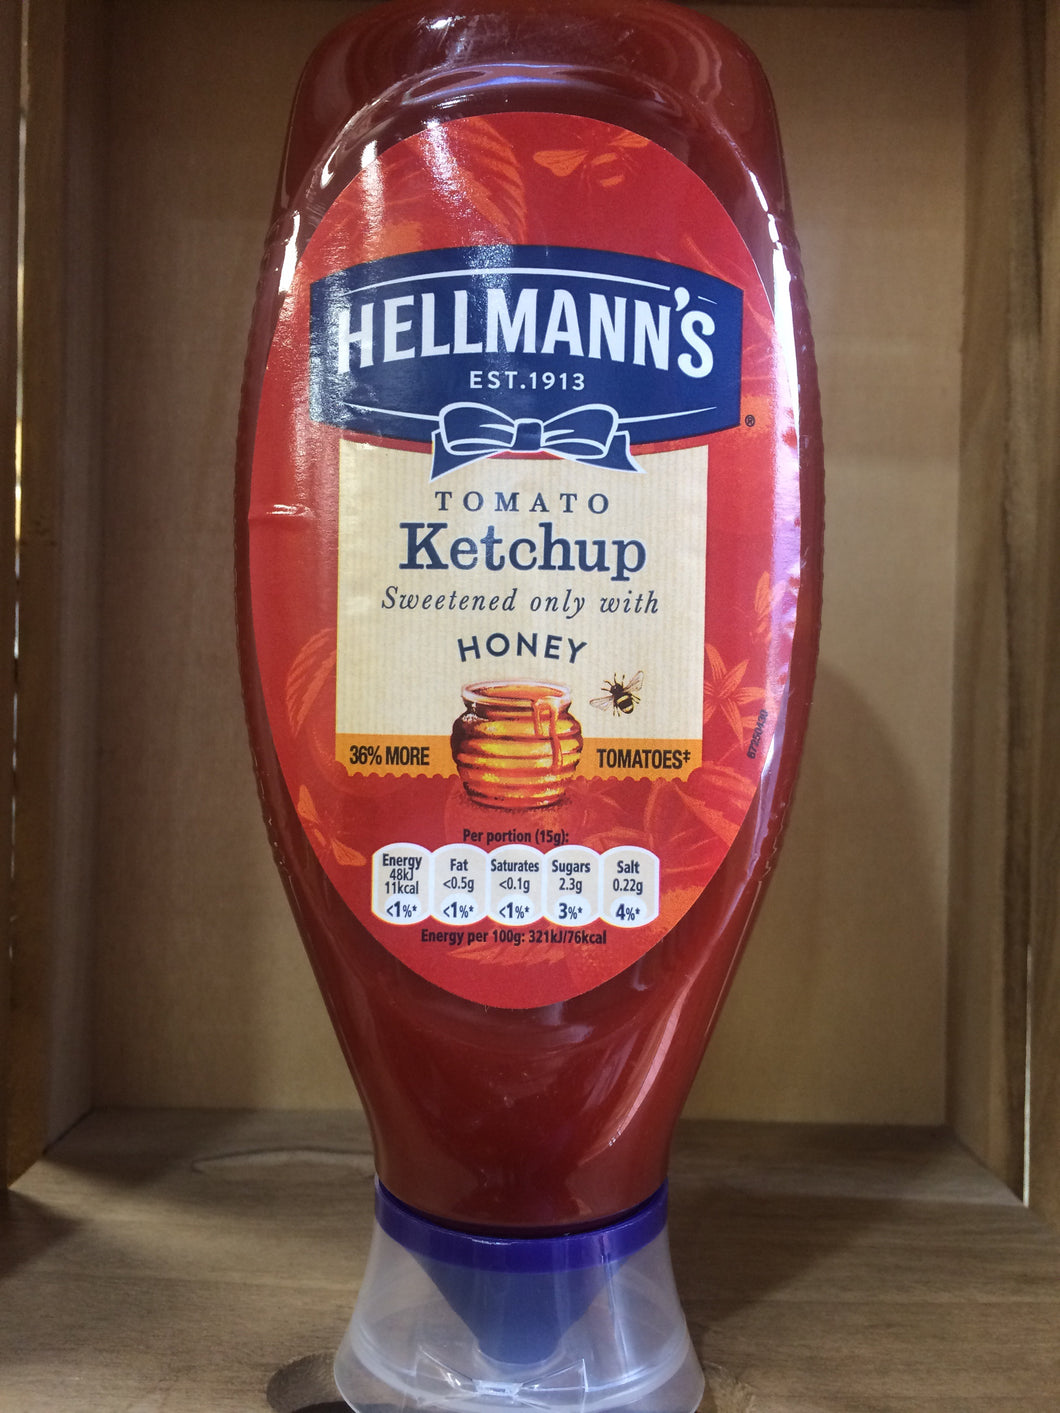 Hellmann's Tomato Ketchup Sweetened with Honey 818g